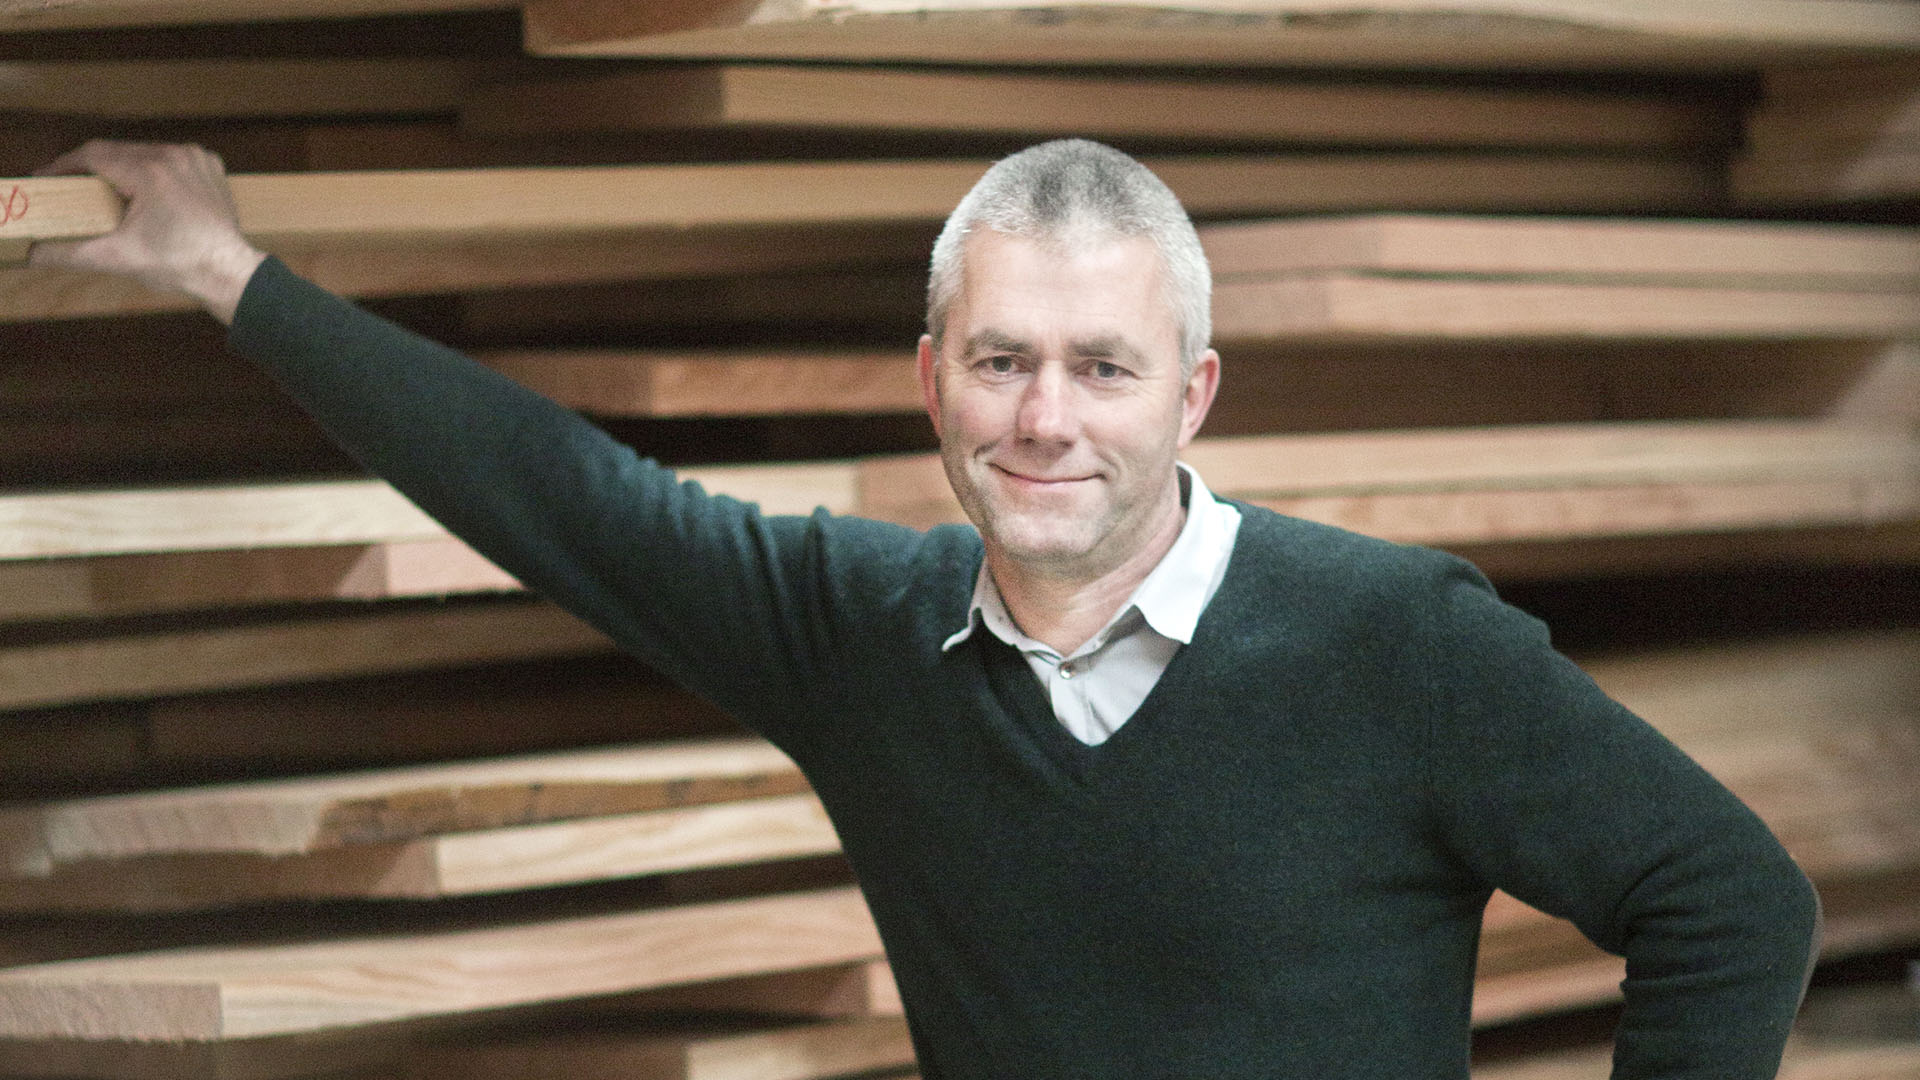 Thomas Dinese, the owner of Dinesen A/S, Danmark